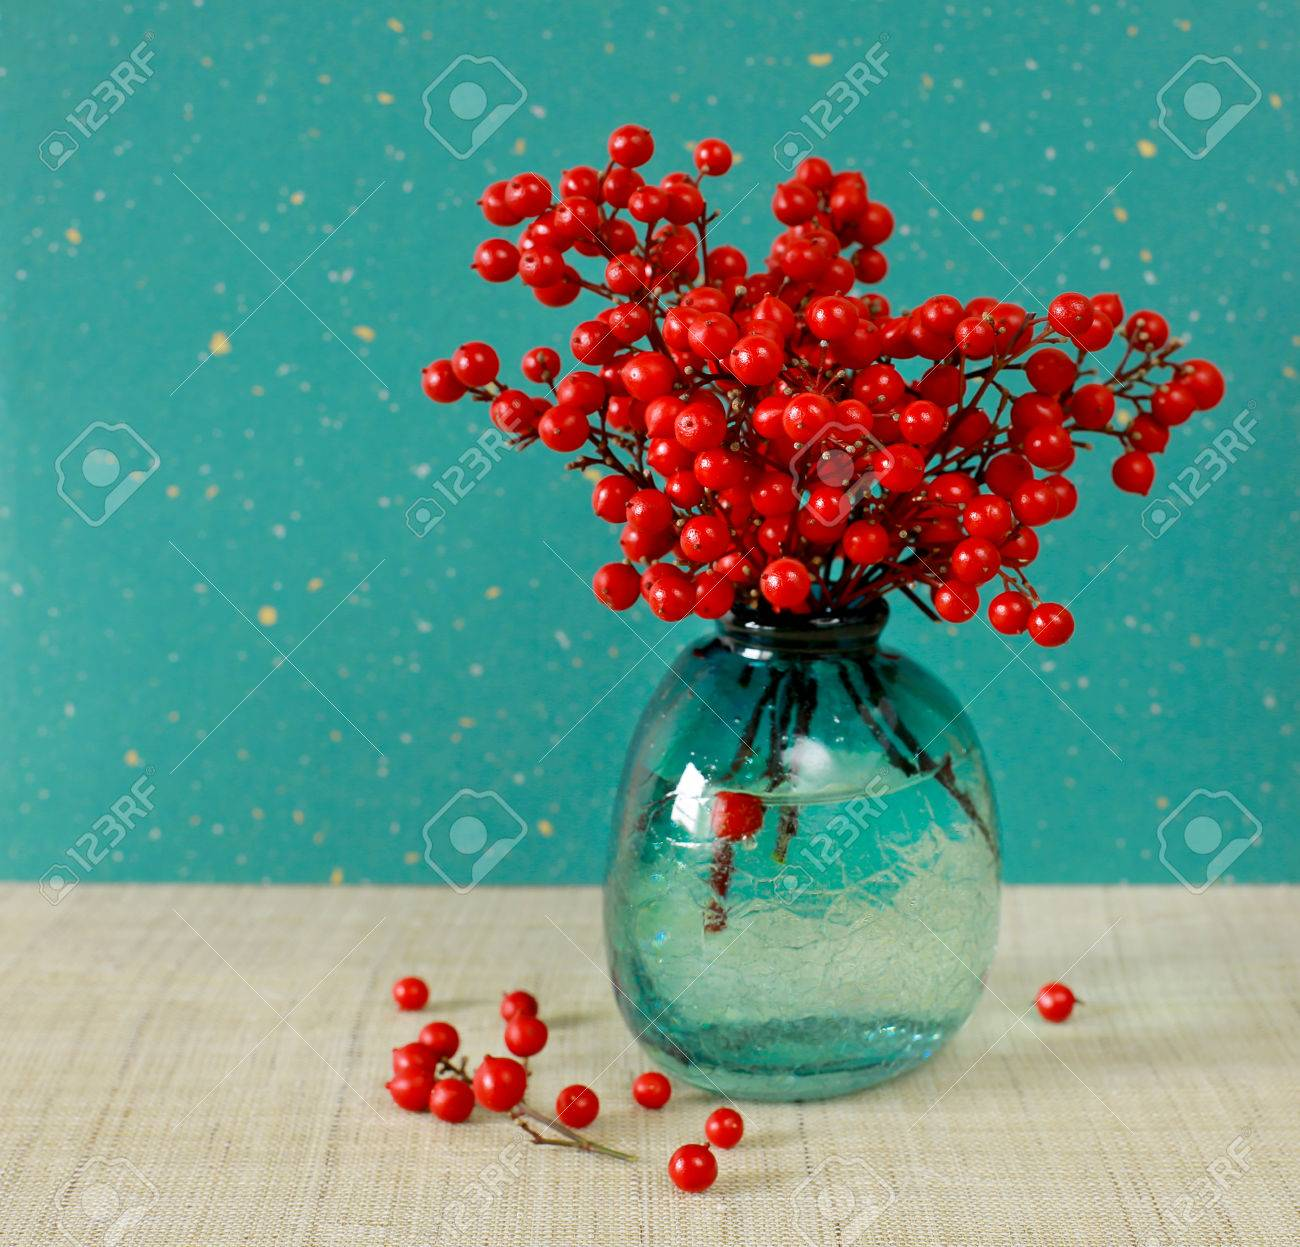 Japanese Vase With Red Berries Of Sacred Bamboo Nandina Domestica With  Colorful Japanese Paper On The